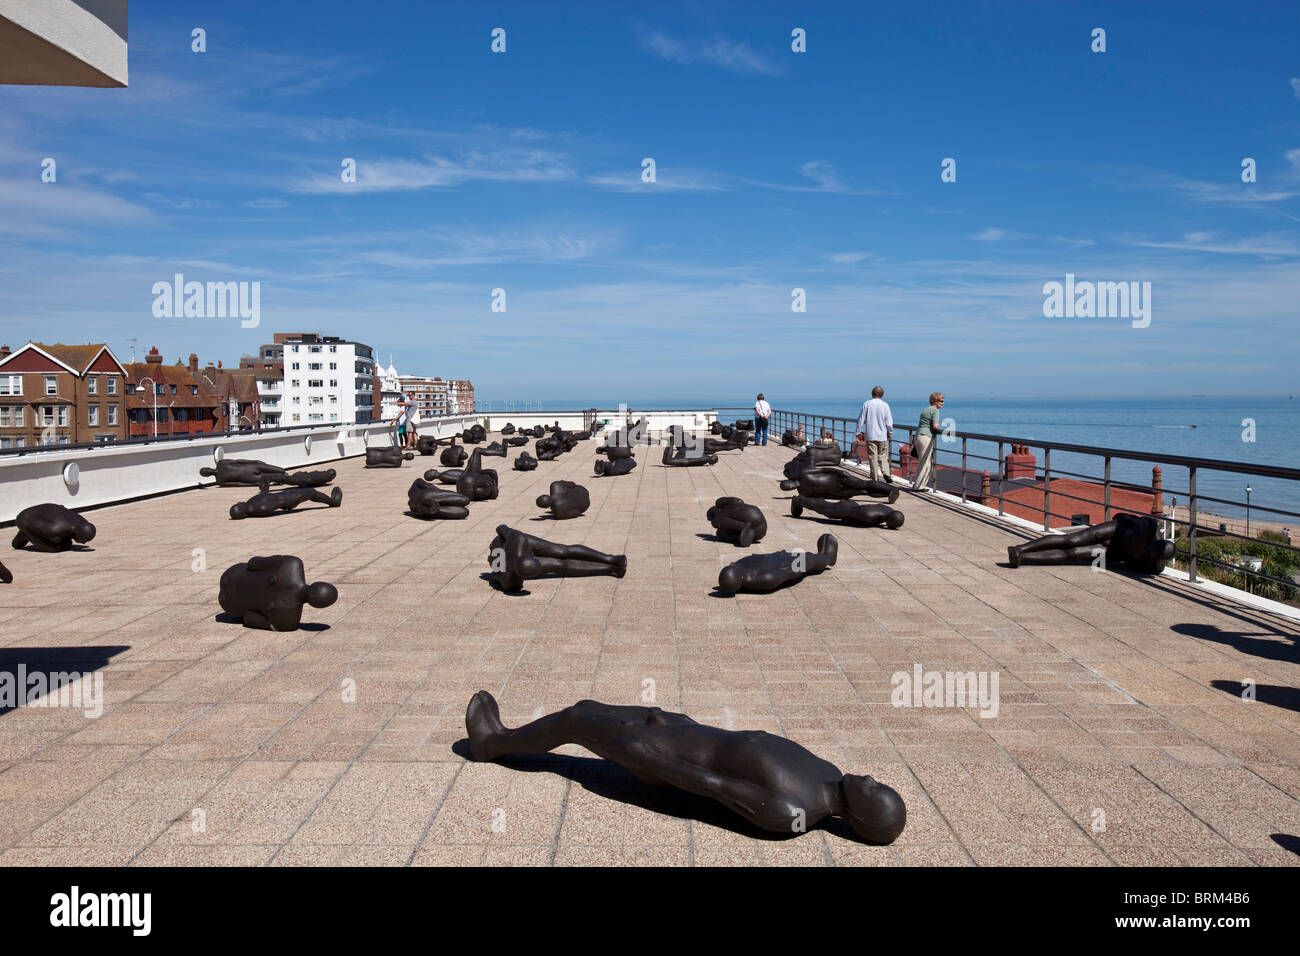 'Critical Mass' an exhibition by the sculptor Antony Gormley on the roof of the De La Warr Pavilion, Bexhill - Stock Image